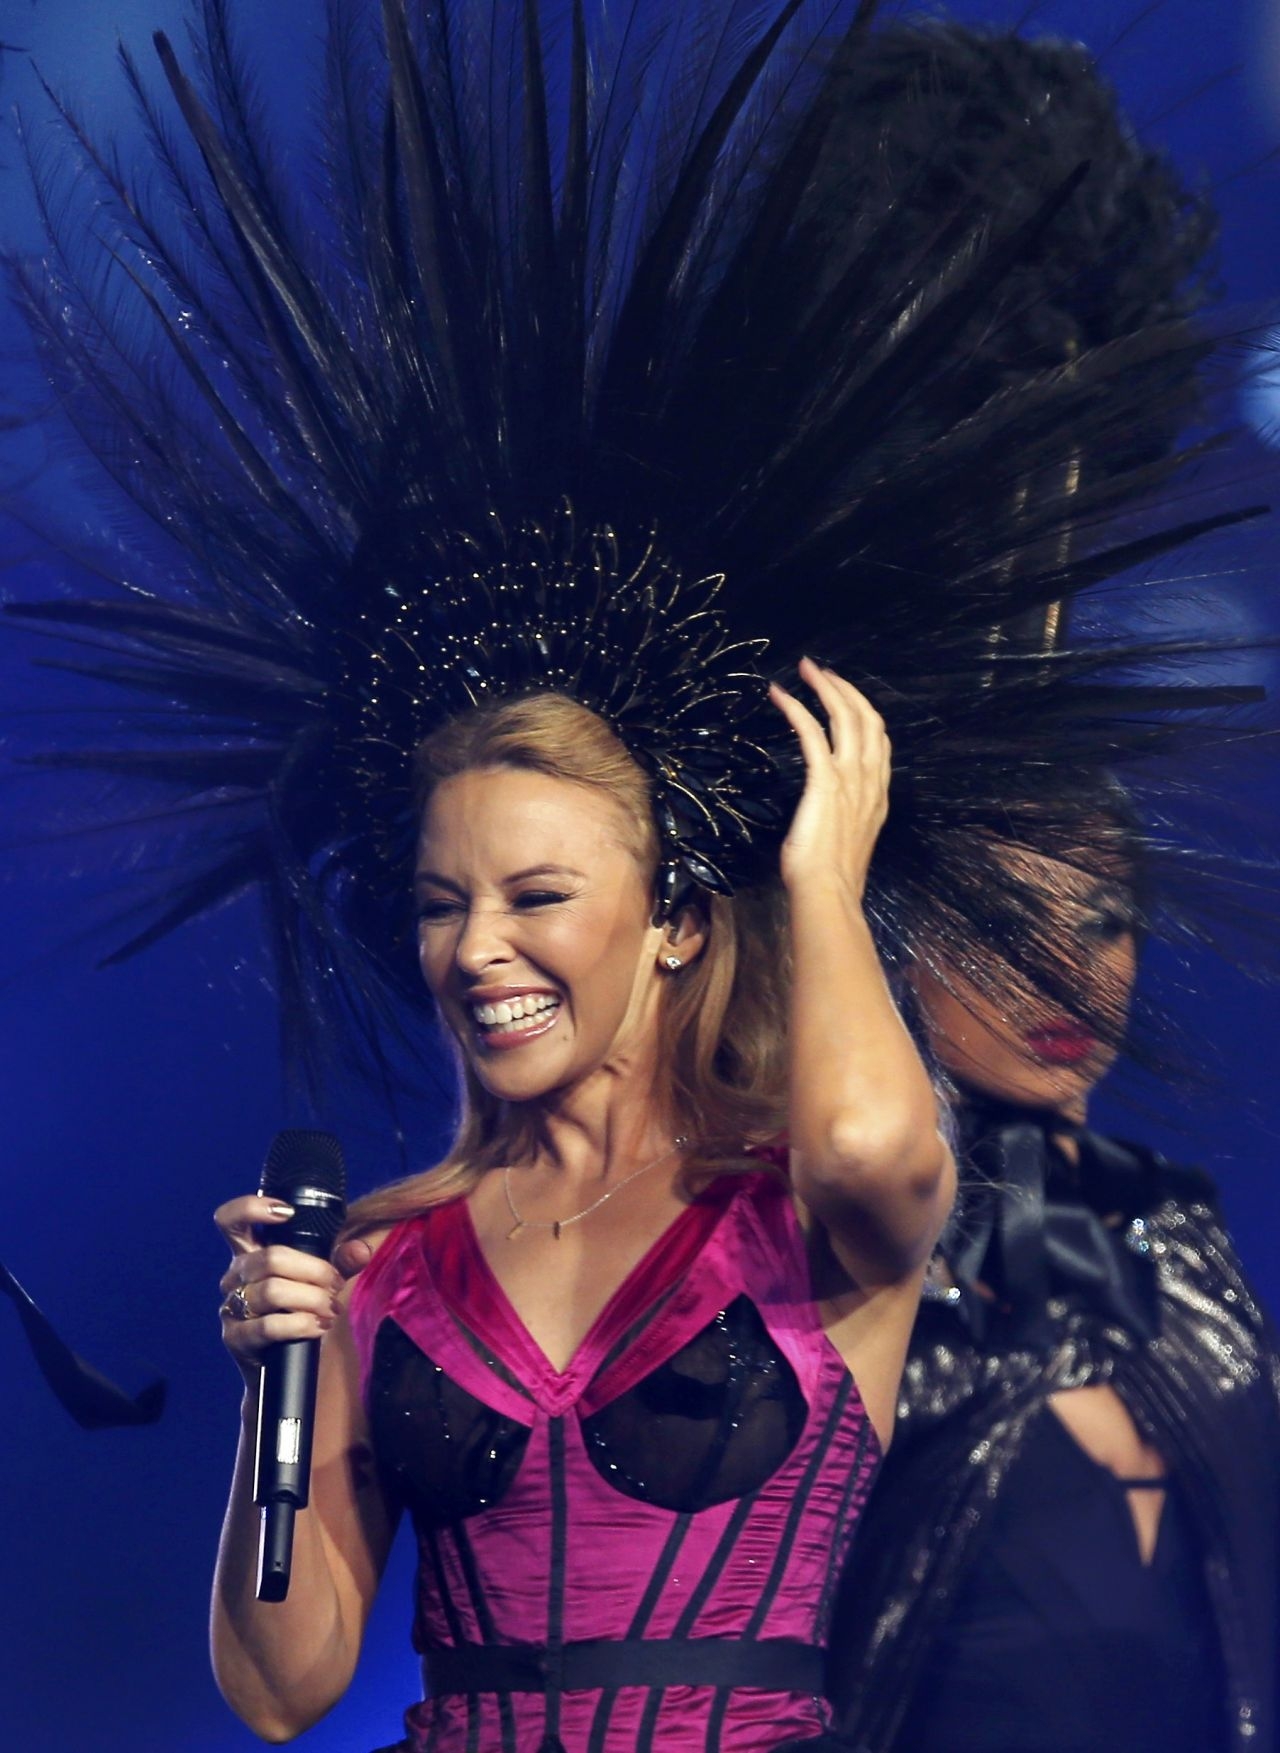 Kylie Minogue - Commonwealth Games 2014 Closing Ceremony